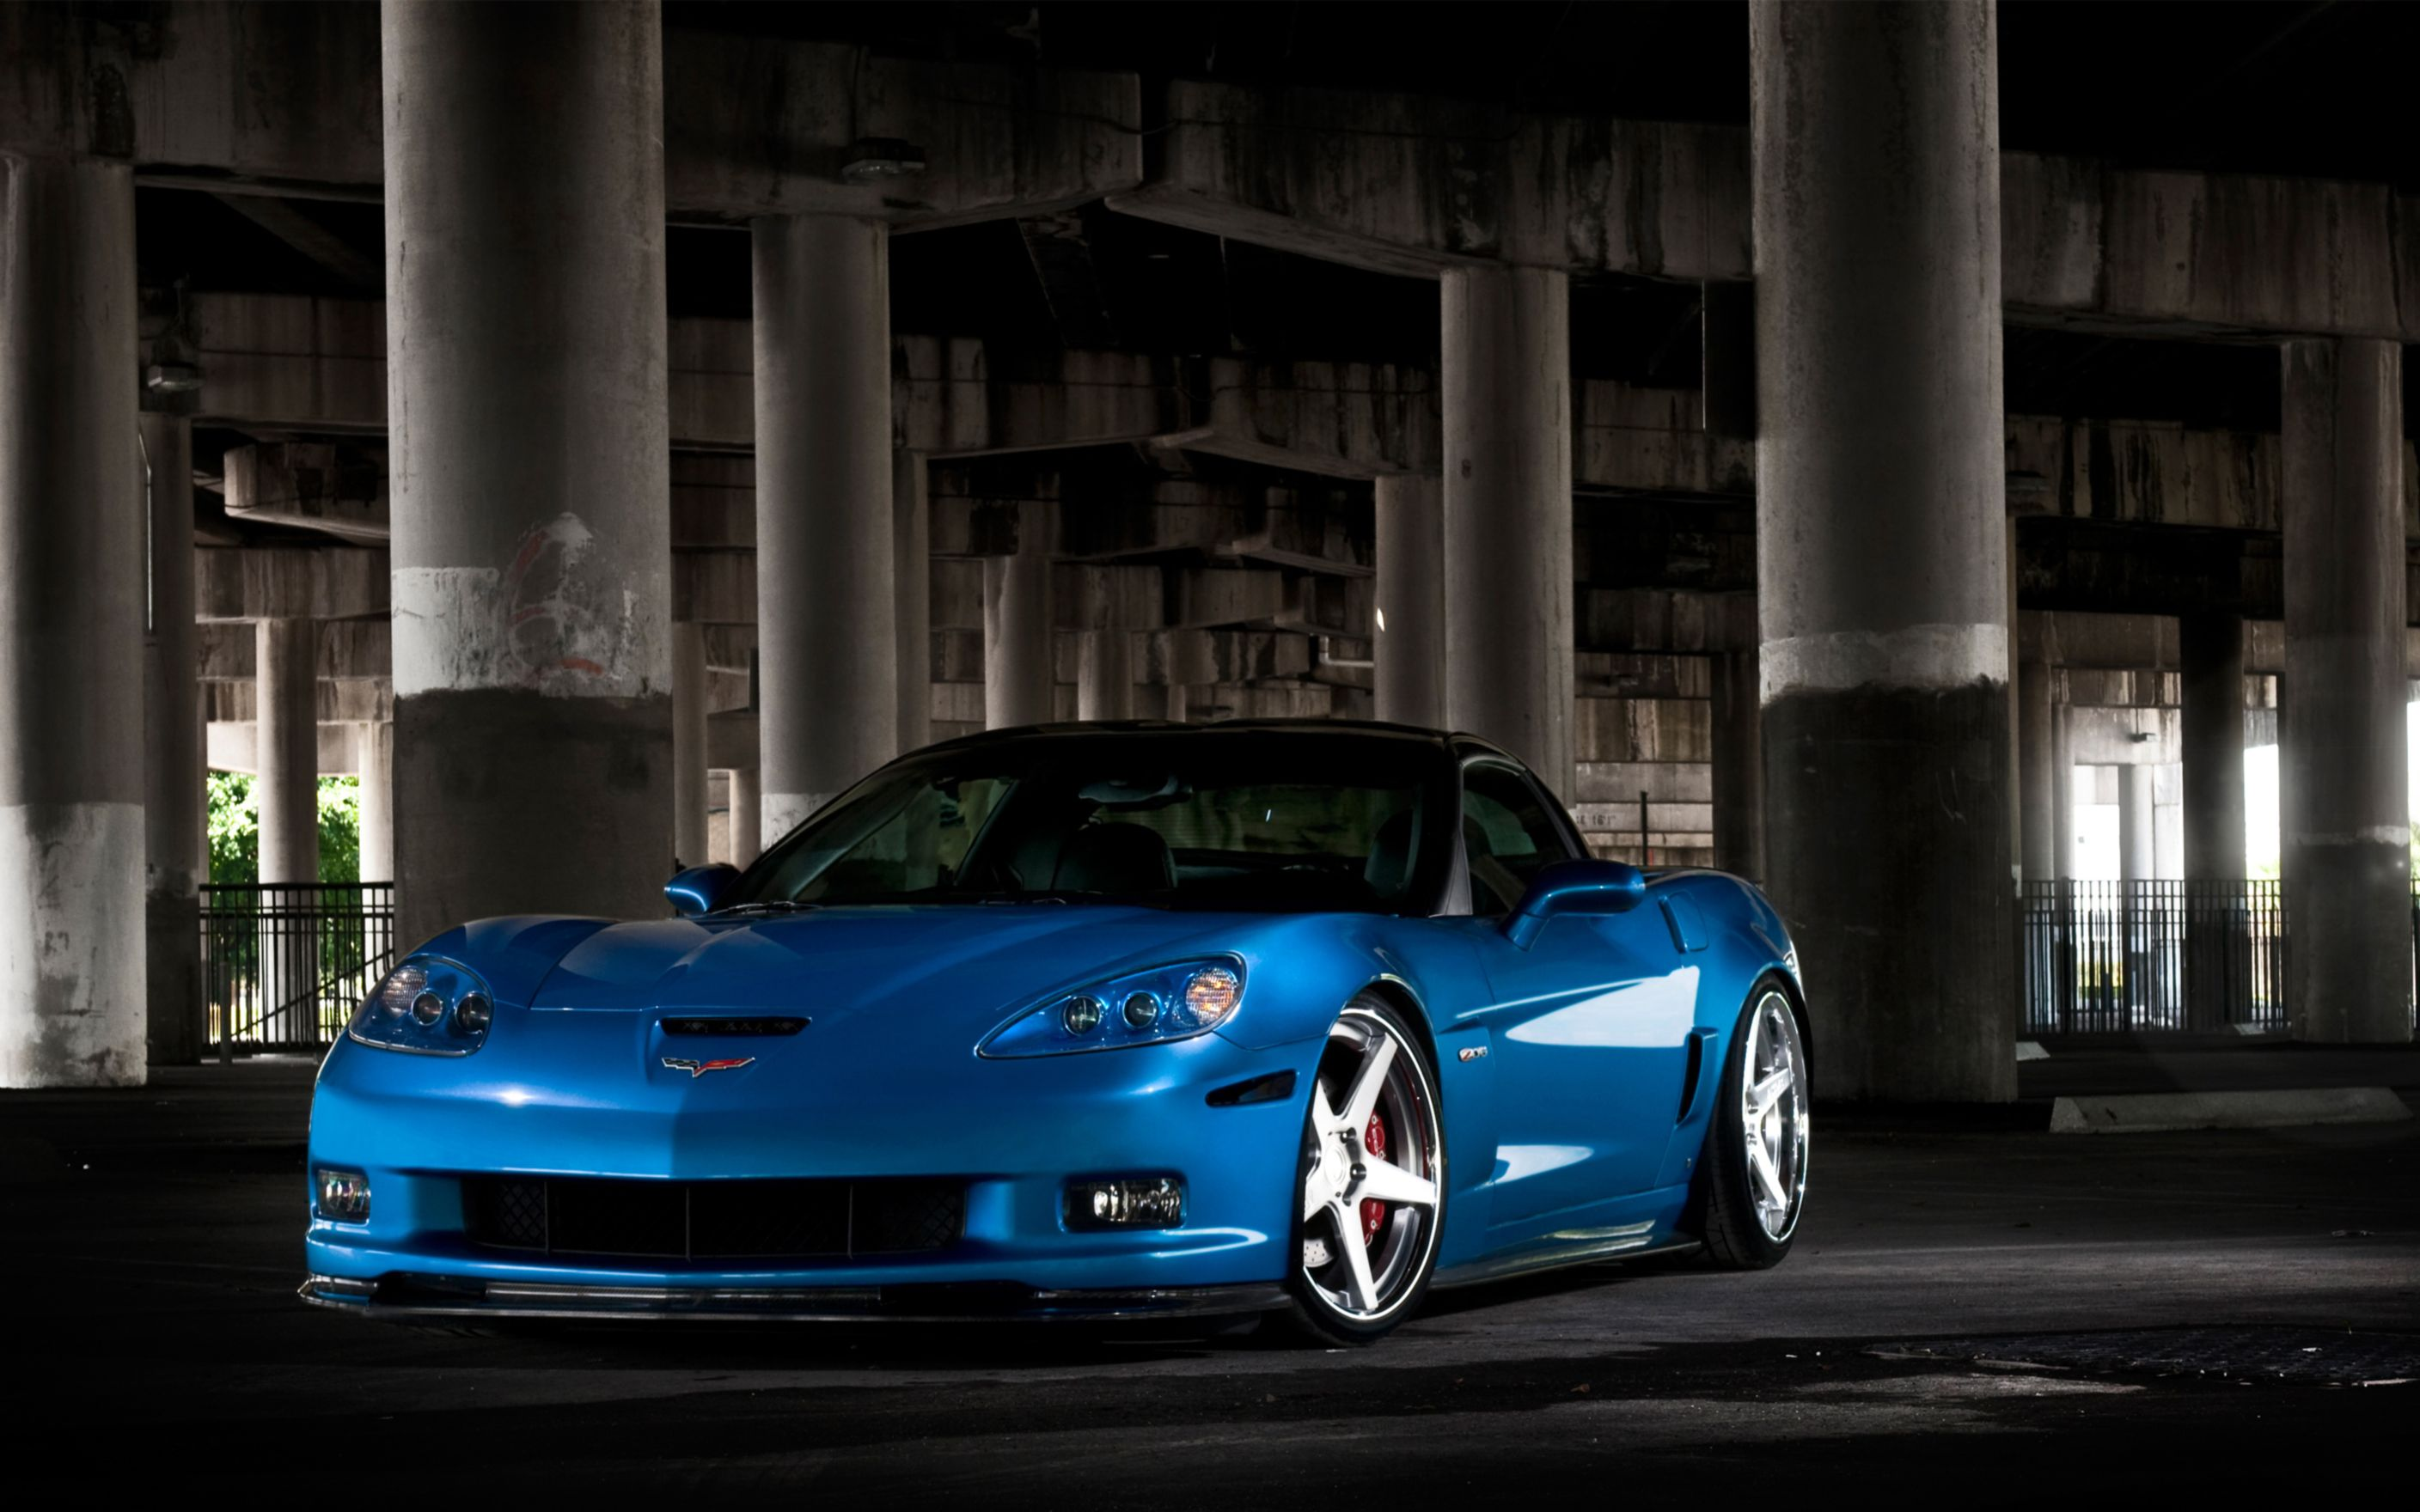 Download free HD Chevrolet Corvette C6 Zr1 Car Wide Wallpaper, image